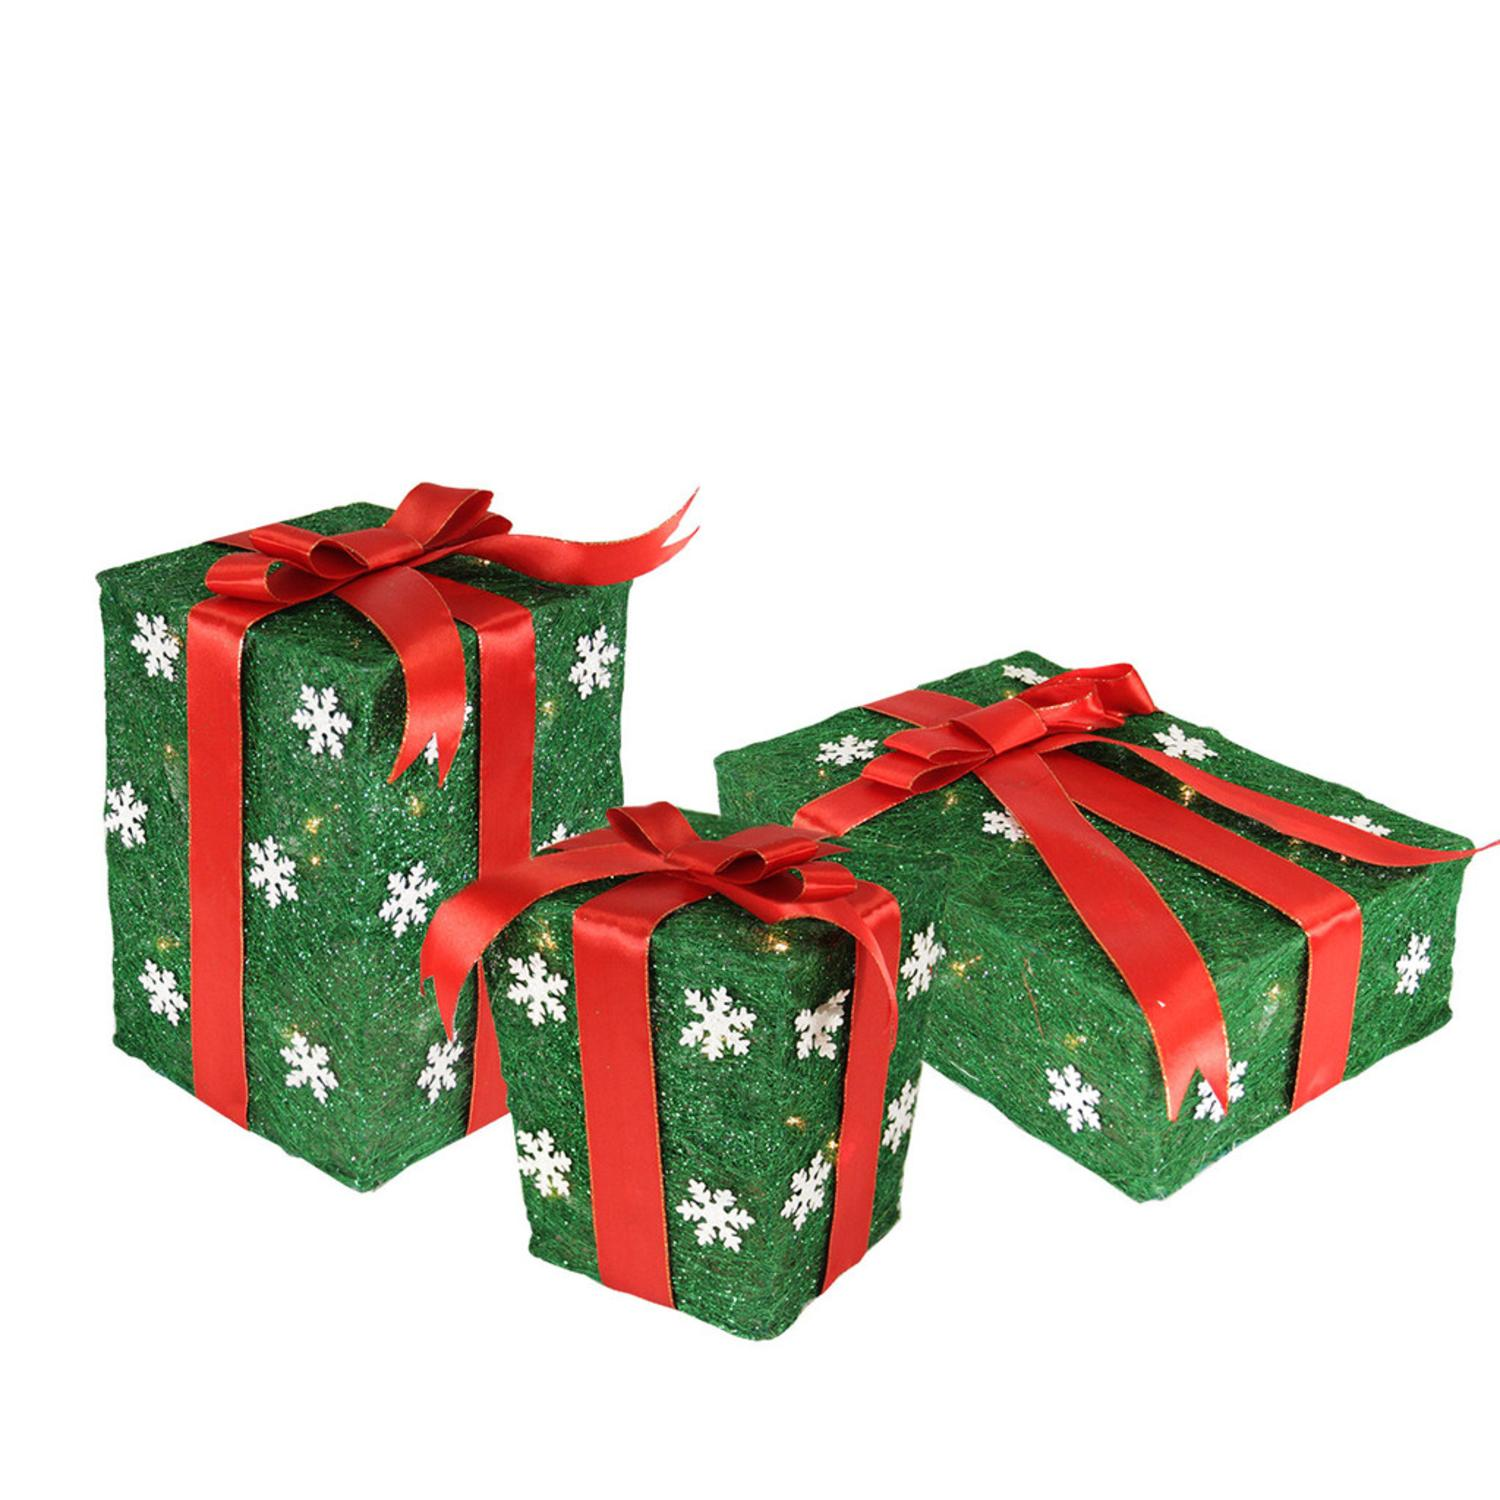 Set of 3 Green Snowflake Sisal Gift Boxes Lighted Christmas Outdoor Decorations